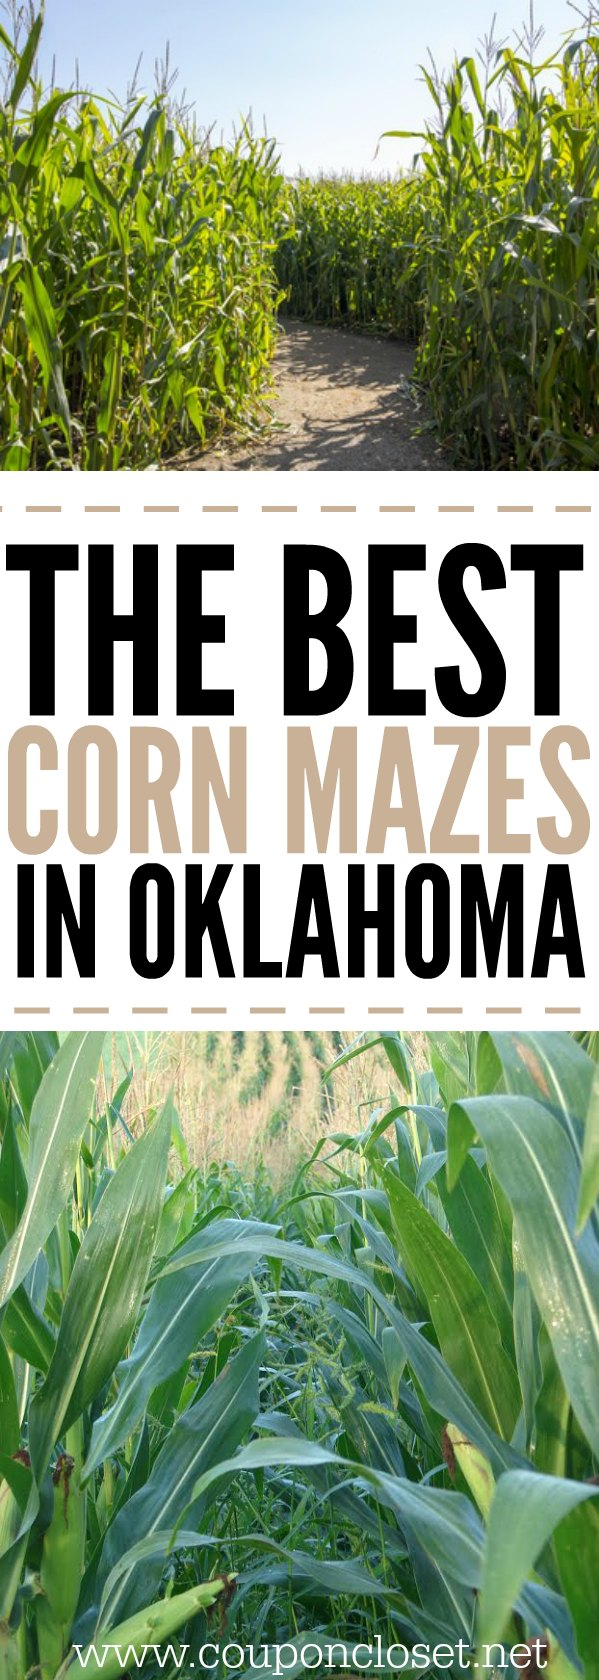 Check out the top 10 corn mazes in Oklahoma. Here are the best corn mazes in oklahoma that your family needs to visit this year.